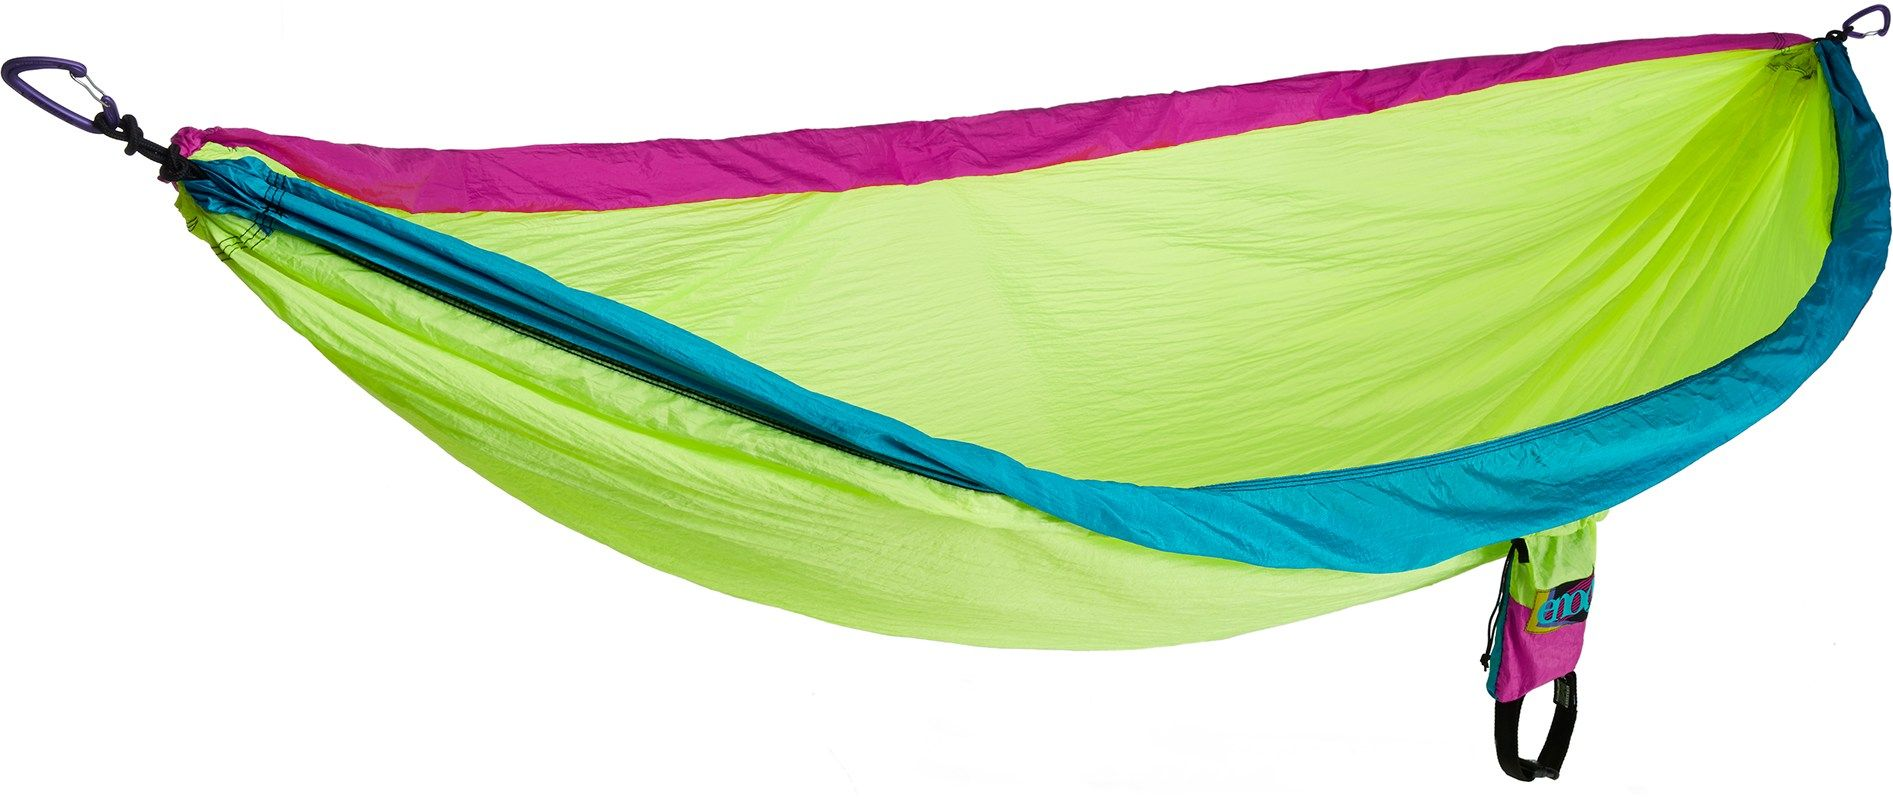 Return To Your Camp Home With A Colorful Hammock Beach